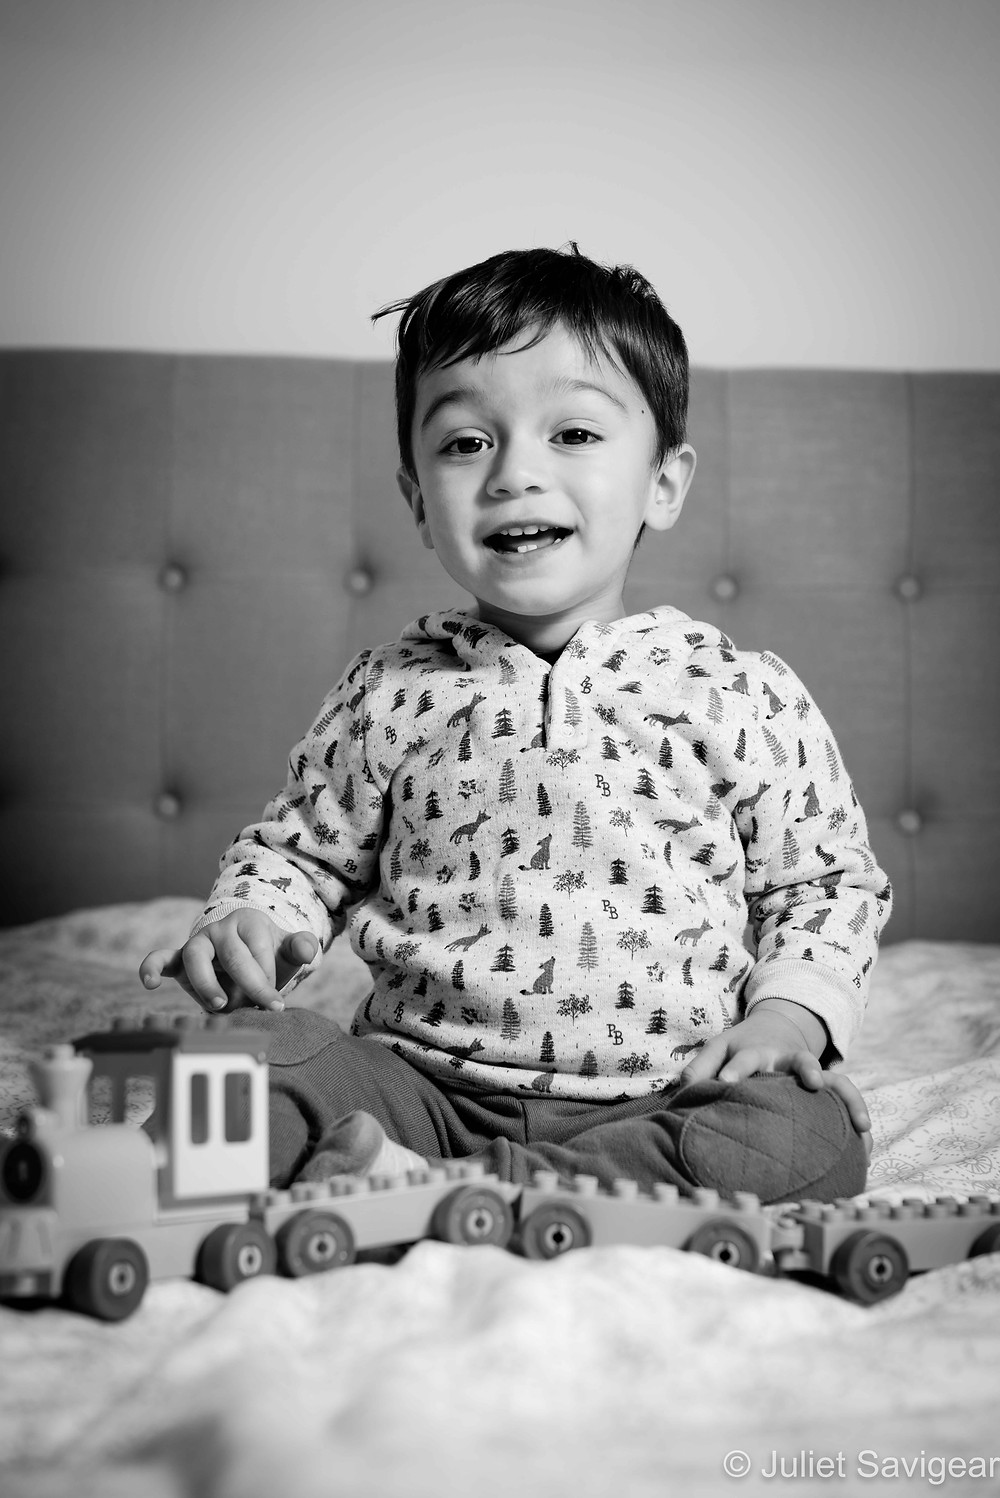 Toddler with toy train